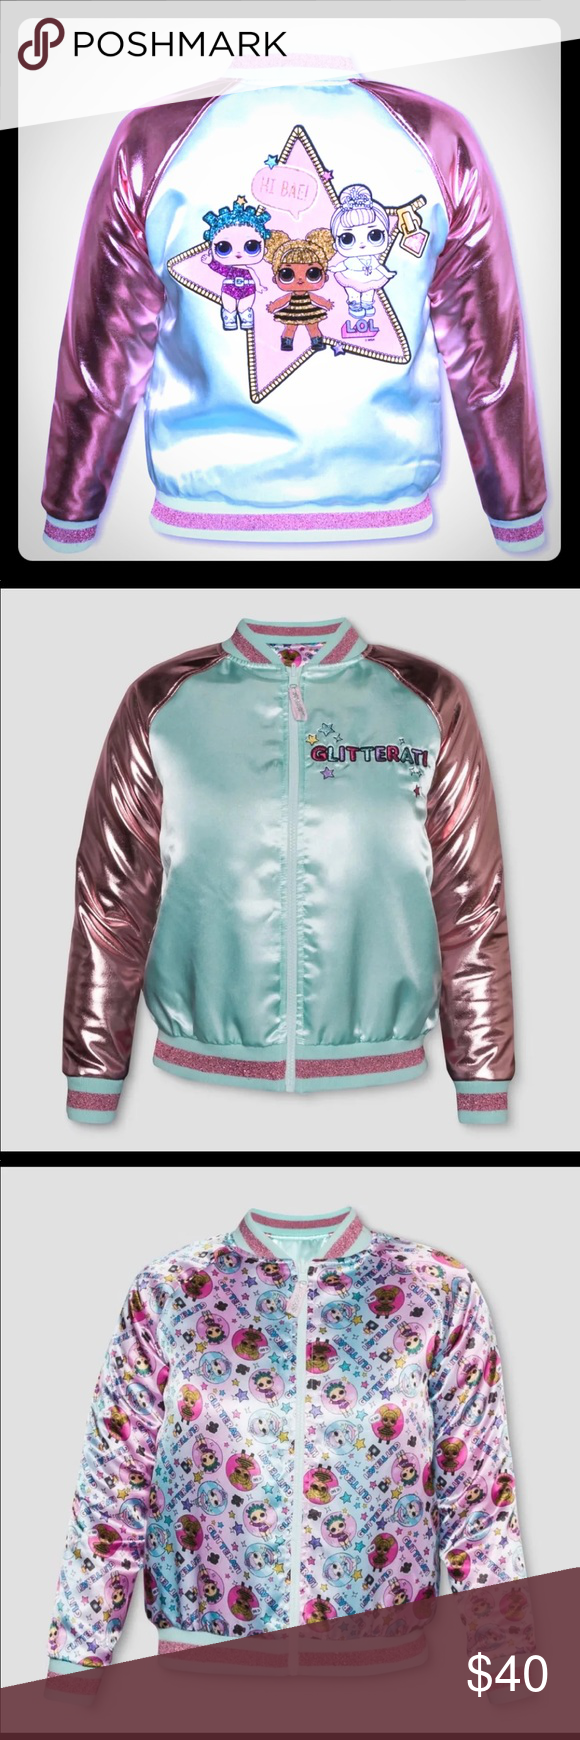 Lol Surprise Doll Bomber Jacket Small Lol Surprise Dolls Bomber Jacket Size Small Super Cute With Jeans And Some High Top Wedged Glittery Tennis S Chaquetas [ 1740 x 580 Pixel ]